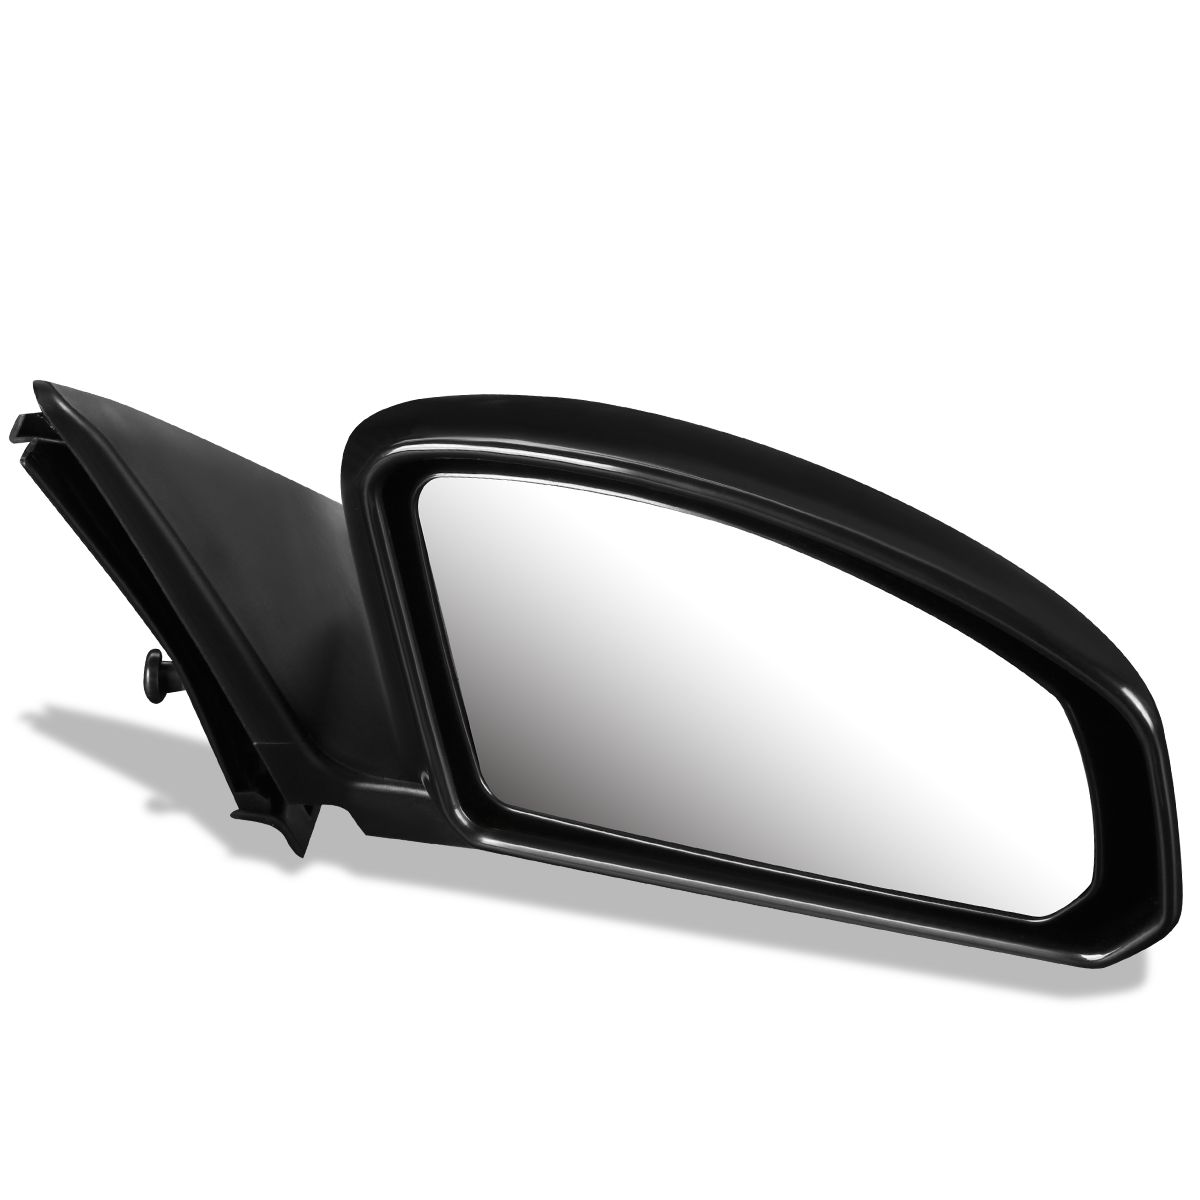 Passengers Power Side View Mirror Heated Replacement for Infiniti Coupe K6301-AM865